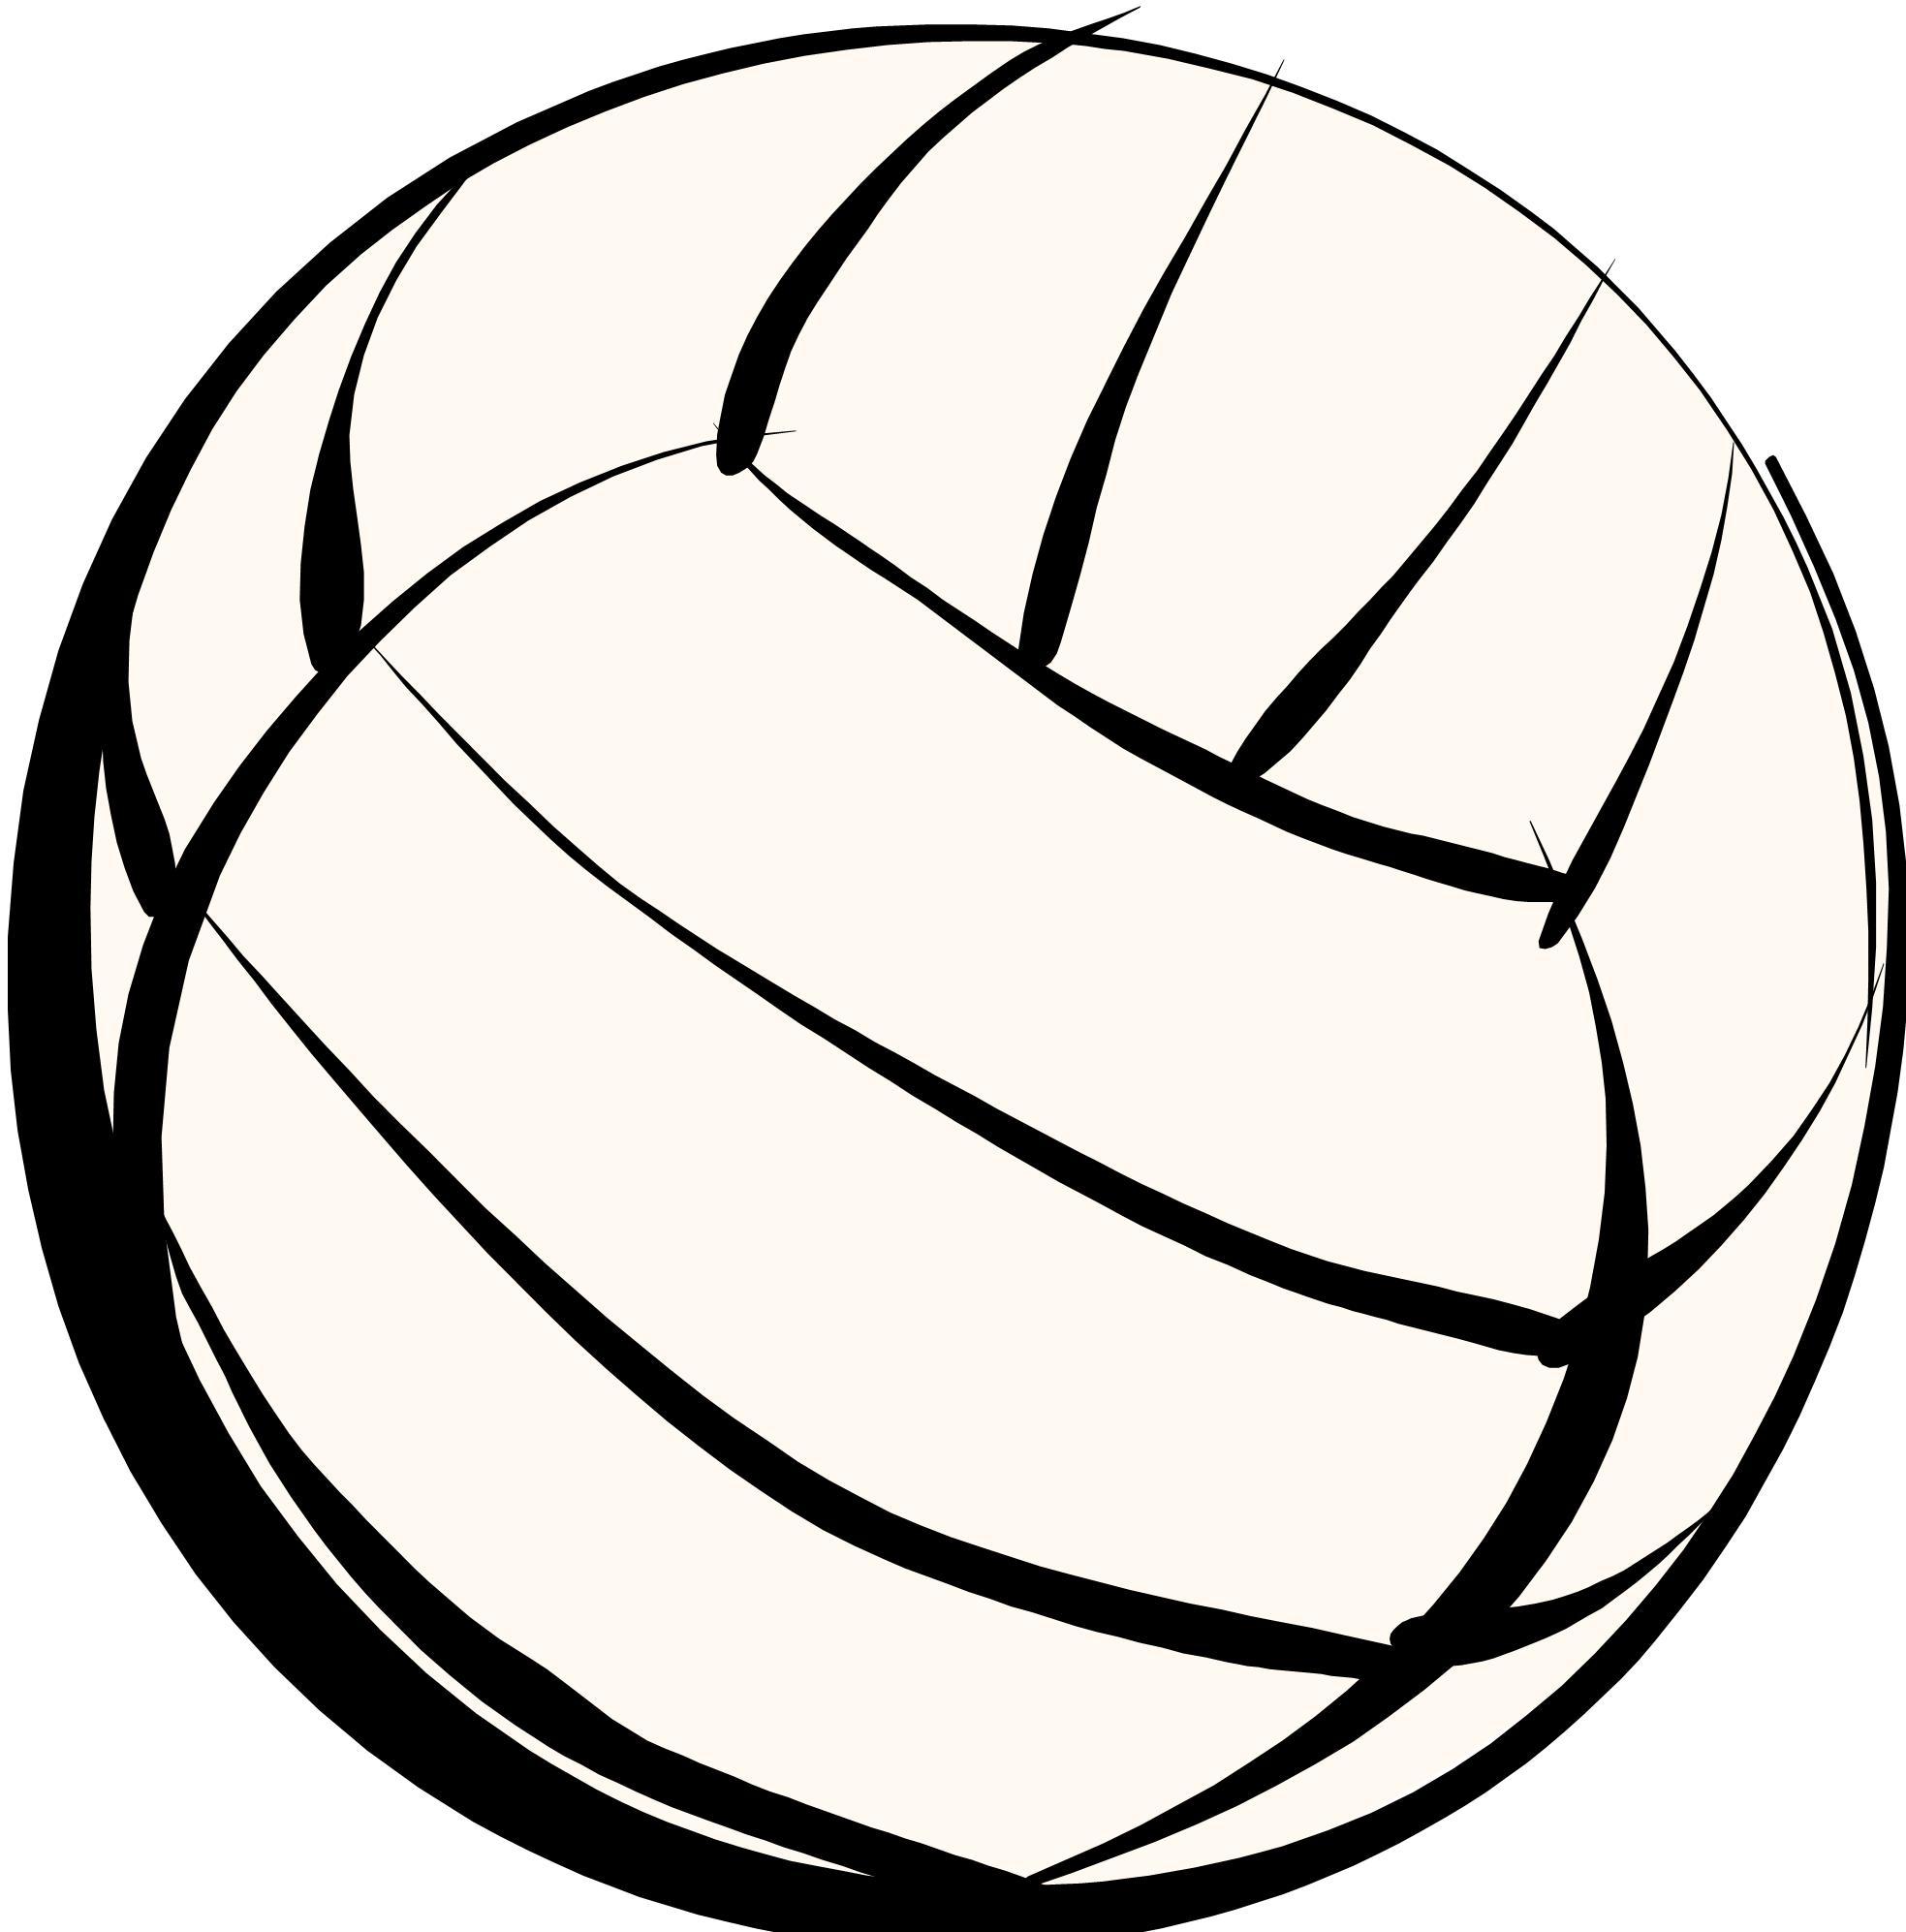 Volleyball transparent background clipart transparent library Volleyball Clipart Transparent Background - Clip Art Library transparent library